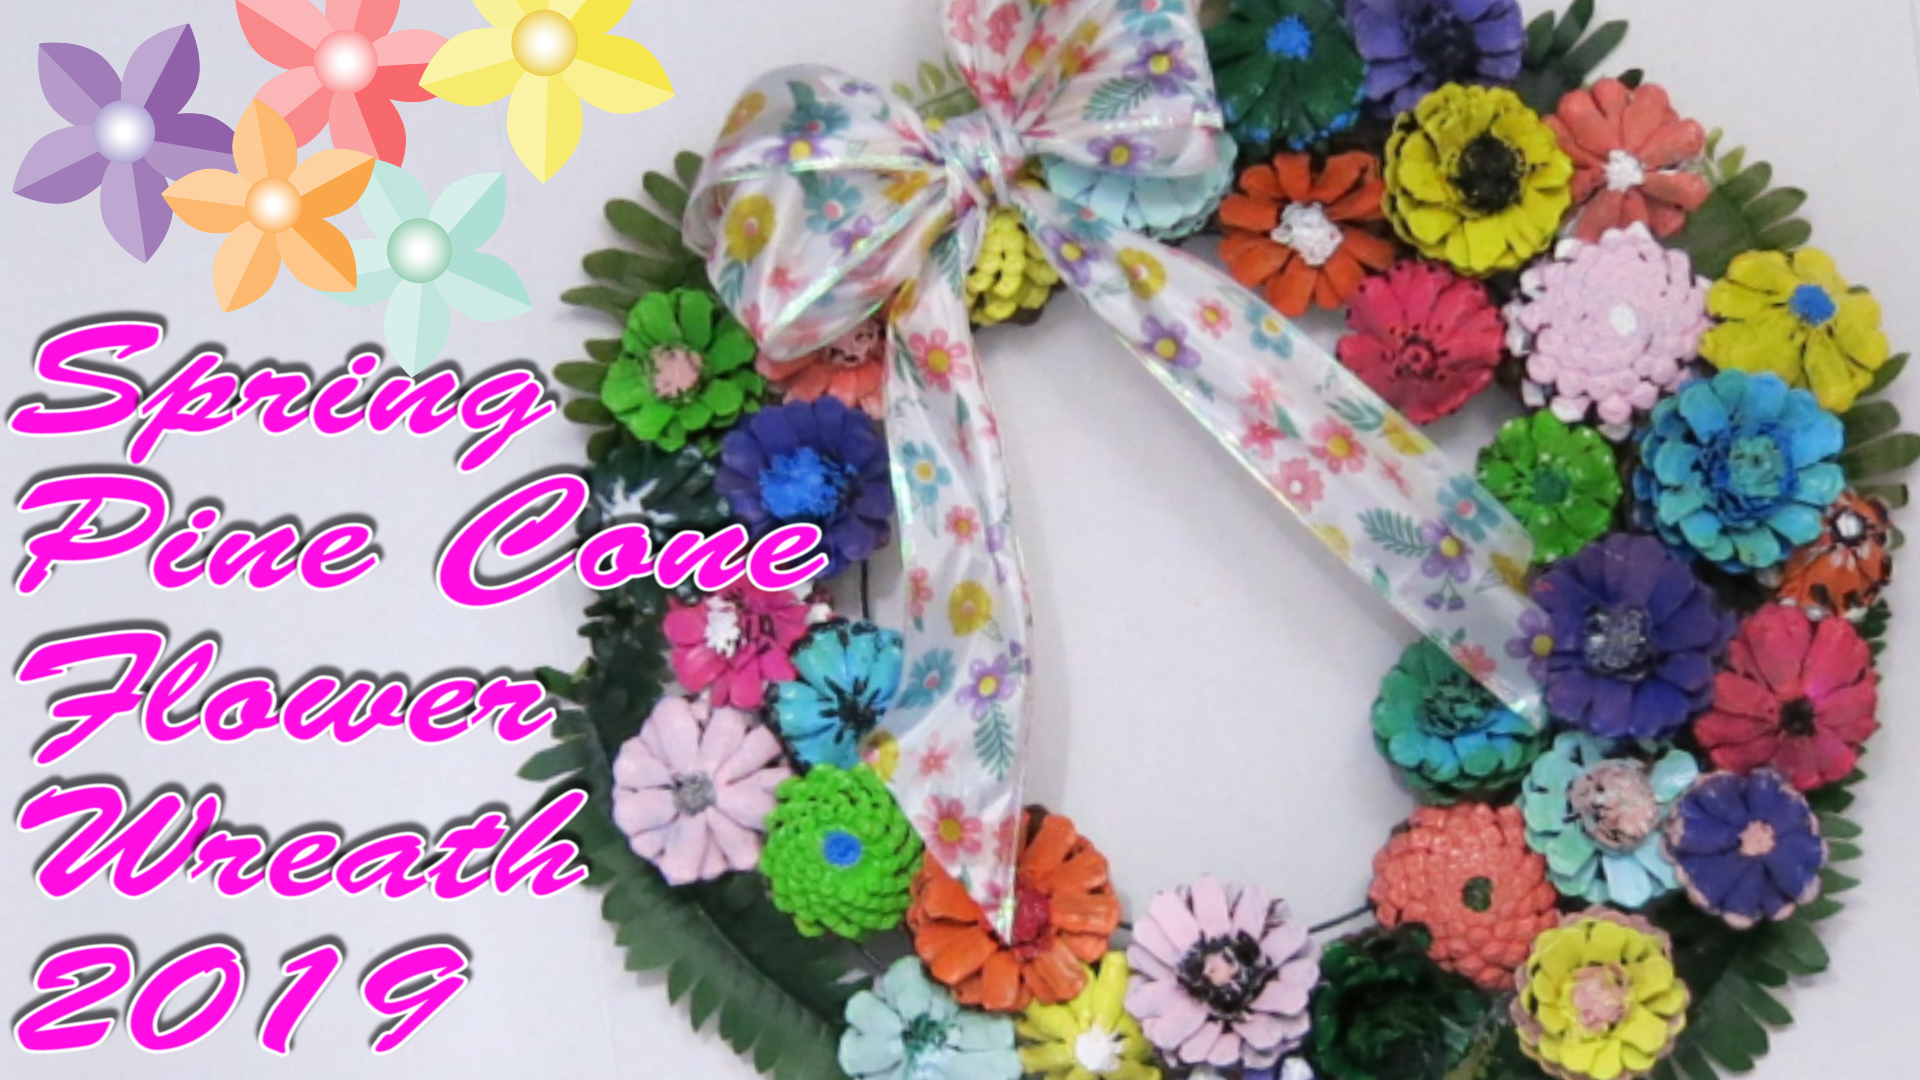 DIY Spring Pine Cone Flower Wreath 2019.jpg